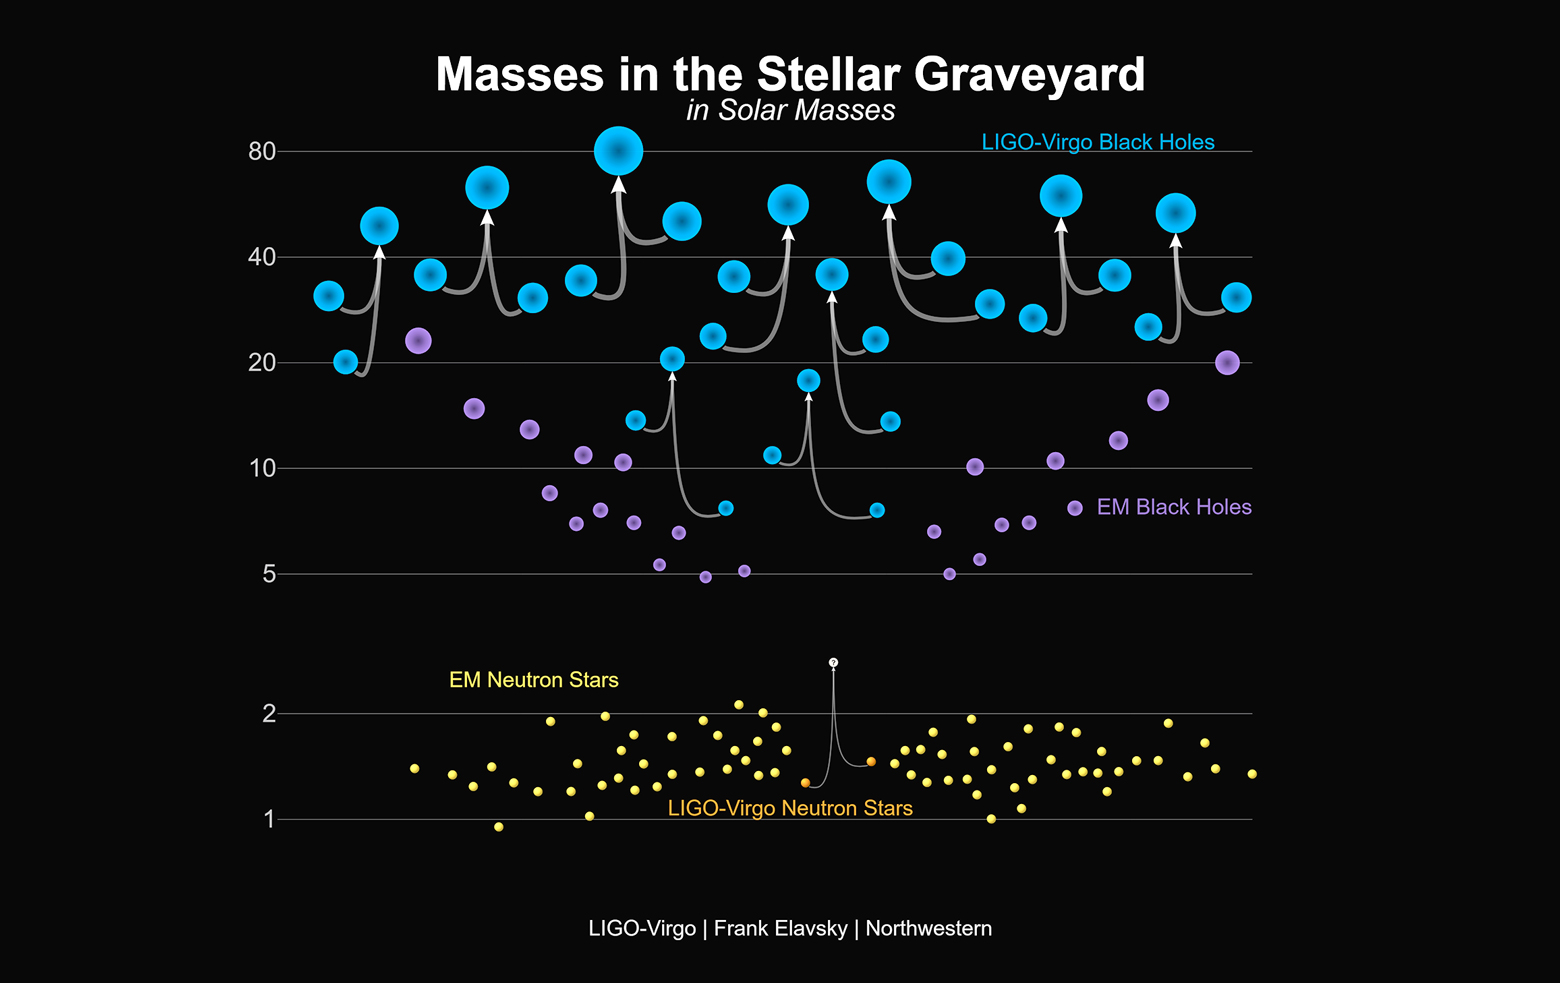 Graphic showing the masses of recently announced gravitational-wave detections and black holes and neutron stars.